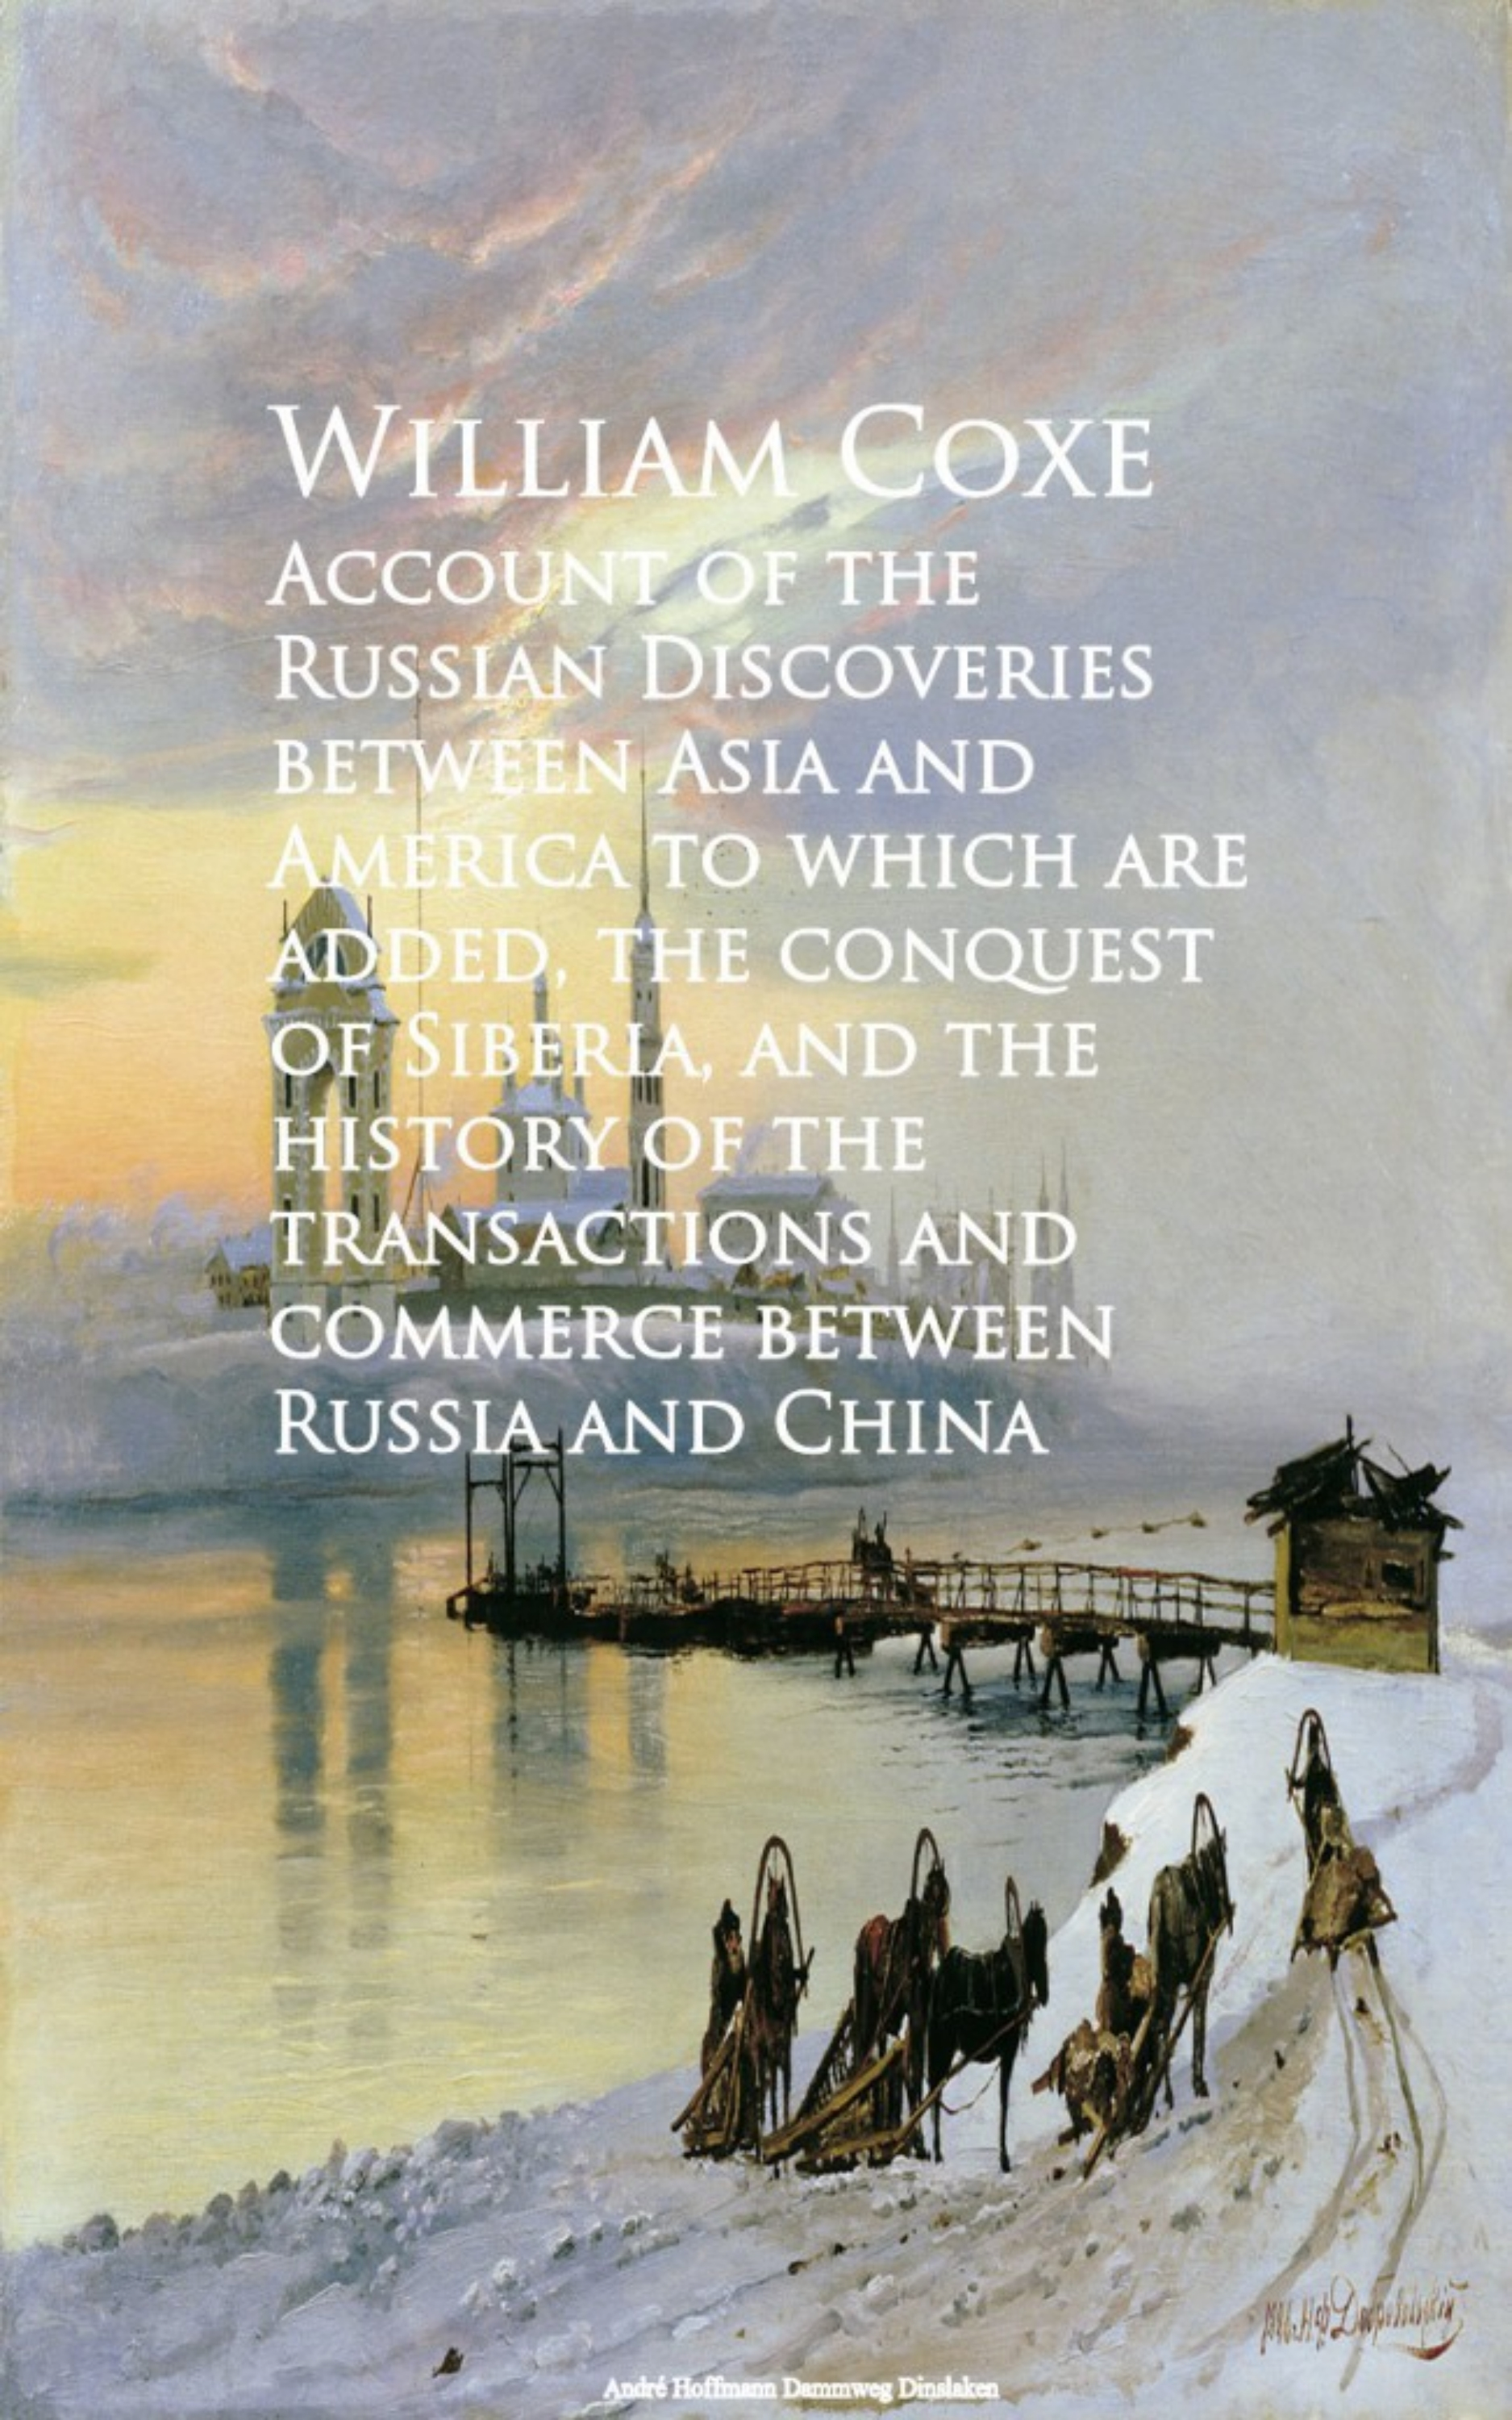 William Coxe Account of the Russian Discoveries between Asia commerce between Russia and China between self and others